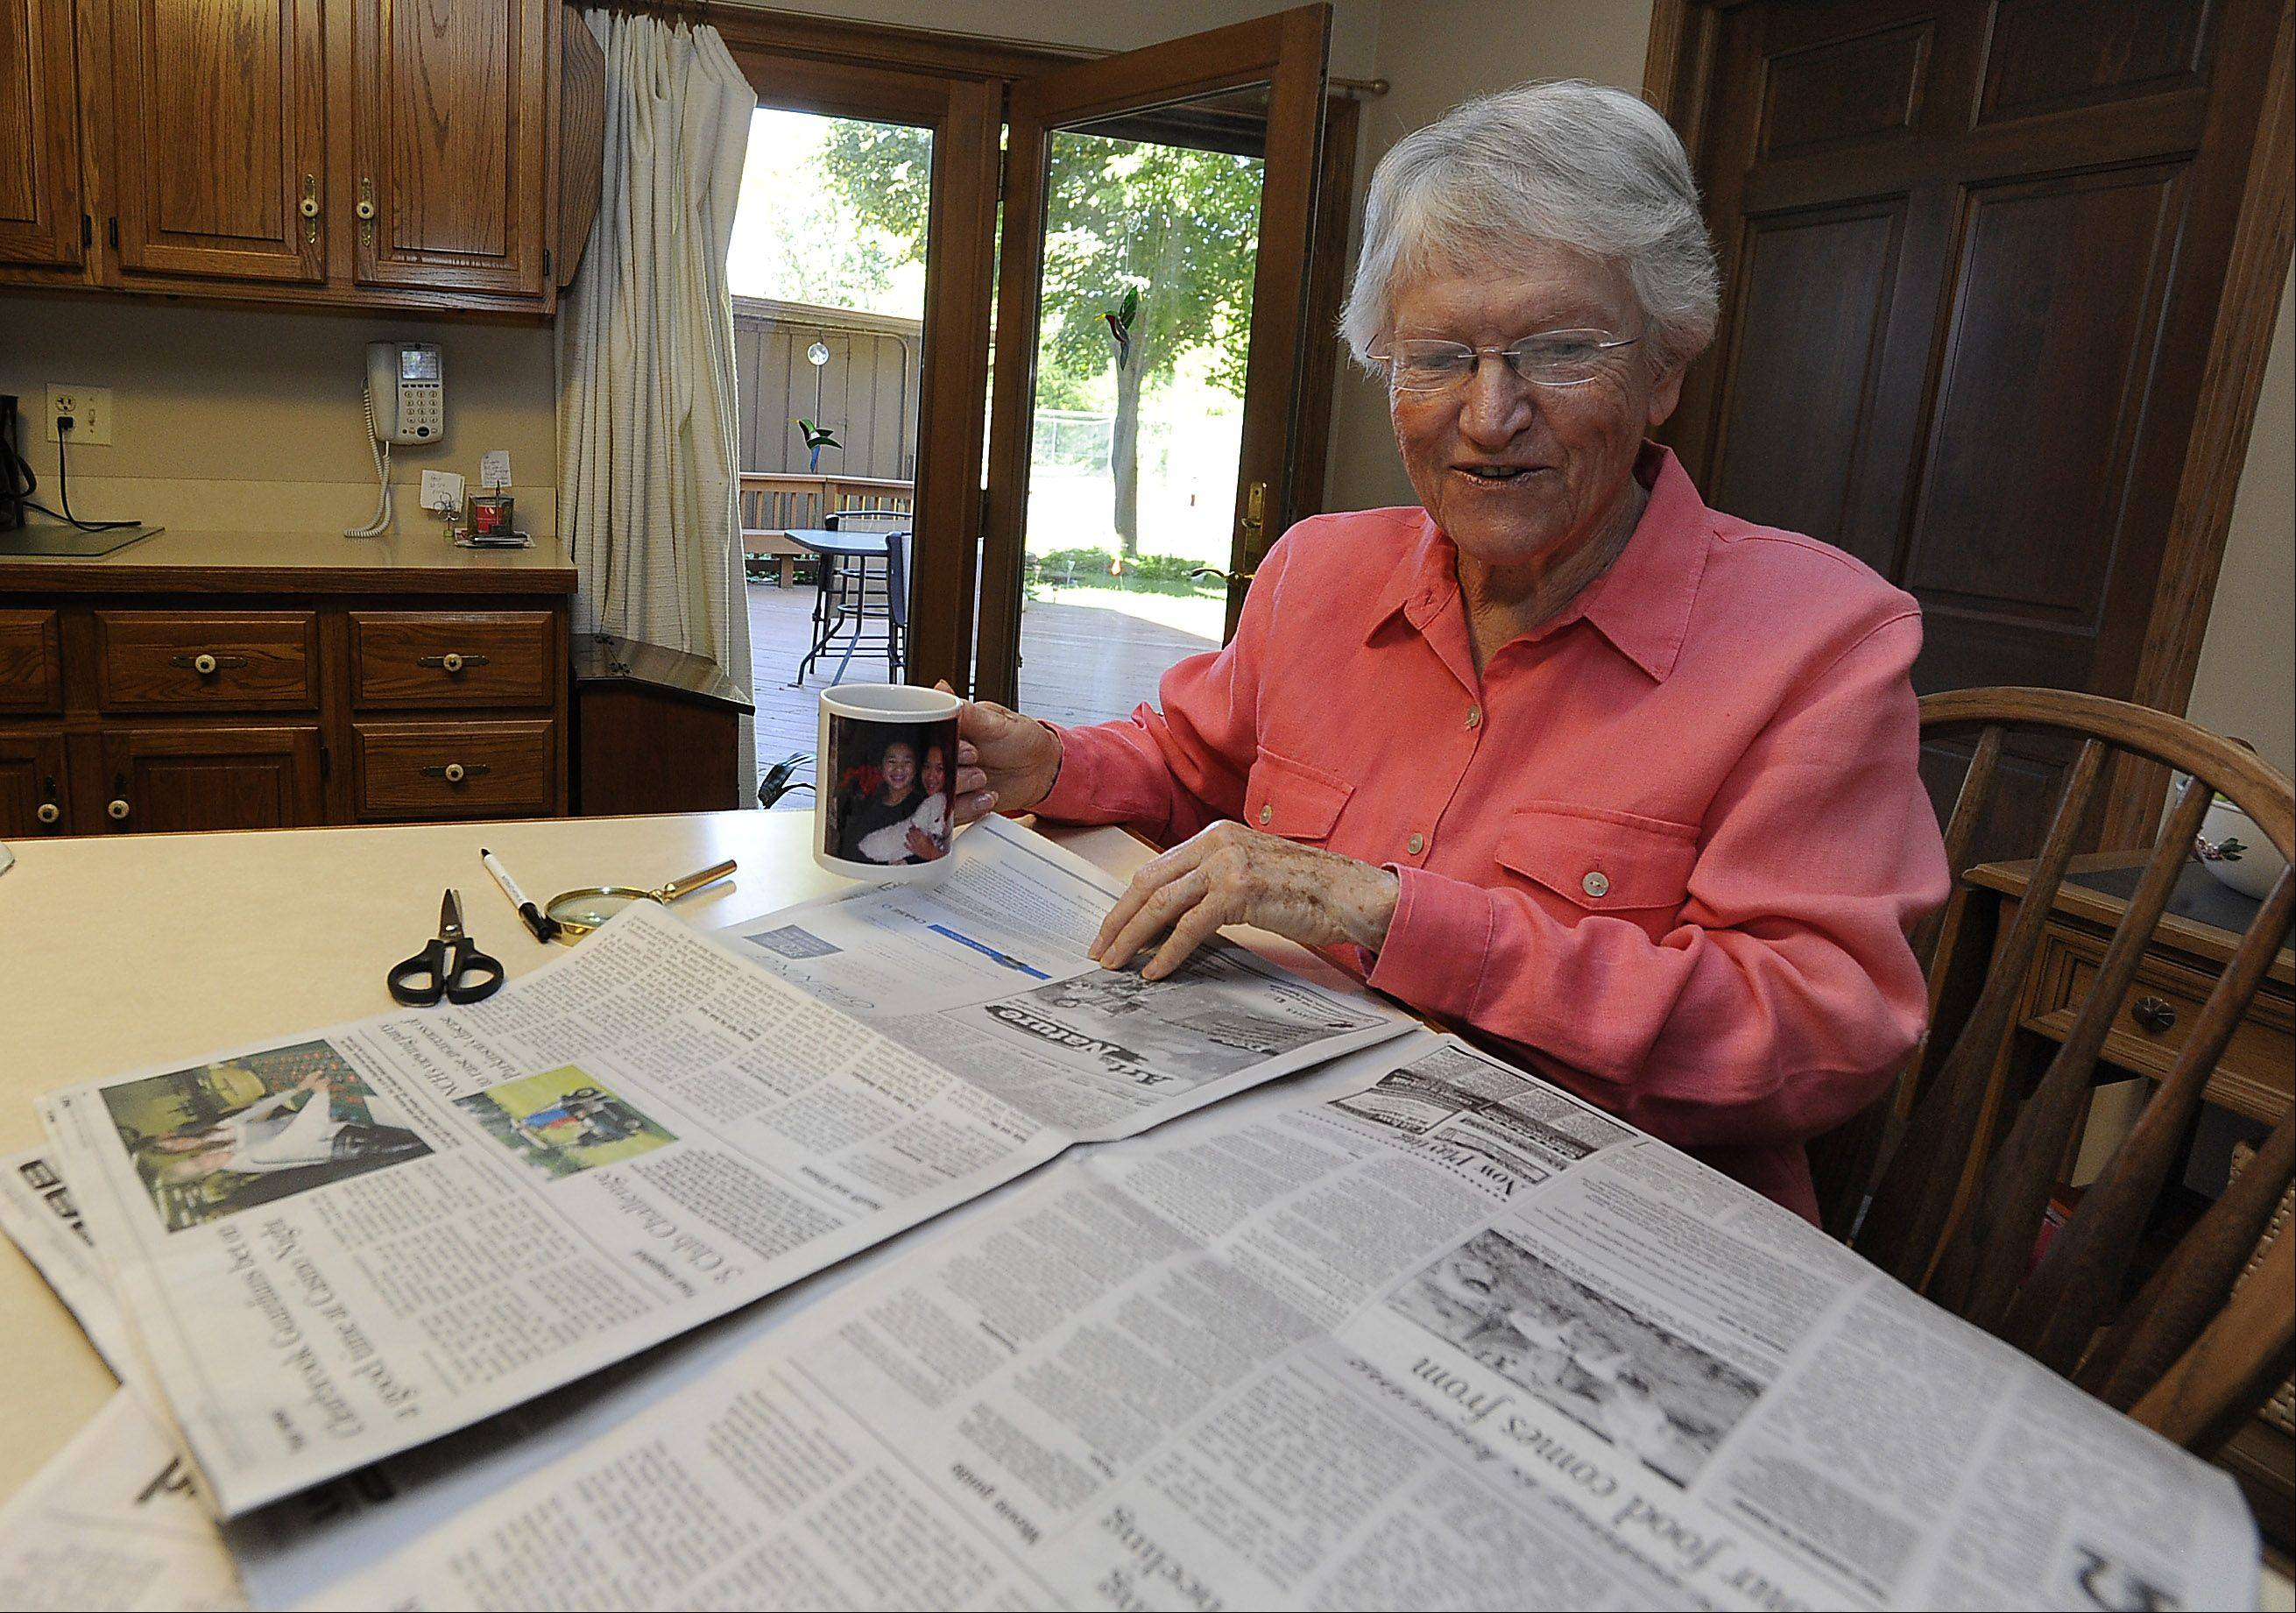 Annette Hayley of Palatine sits down in the morning with her cup of coffee and reads the Neighbor section of the Daily Herald, her favorite section. She has been a loyal reader since 1965.